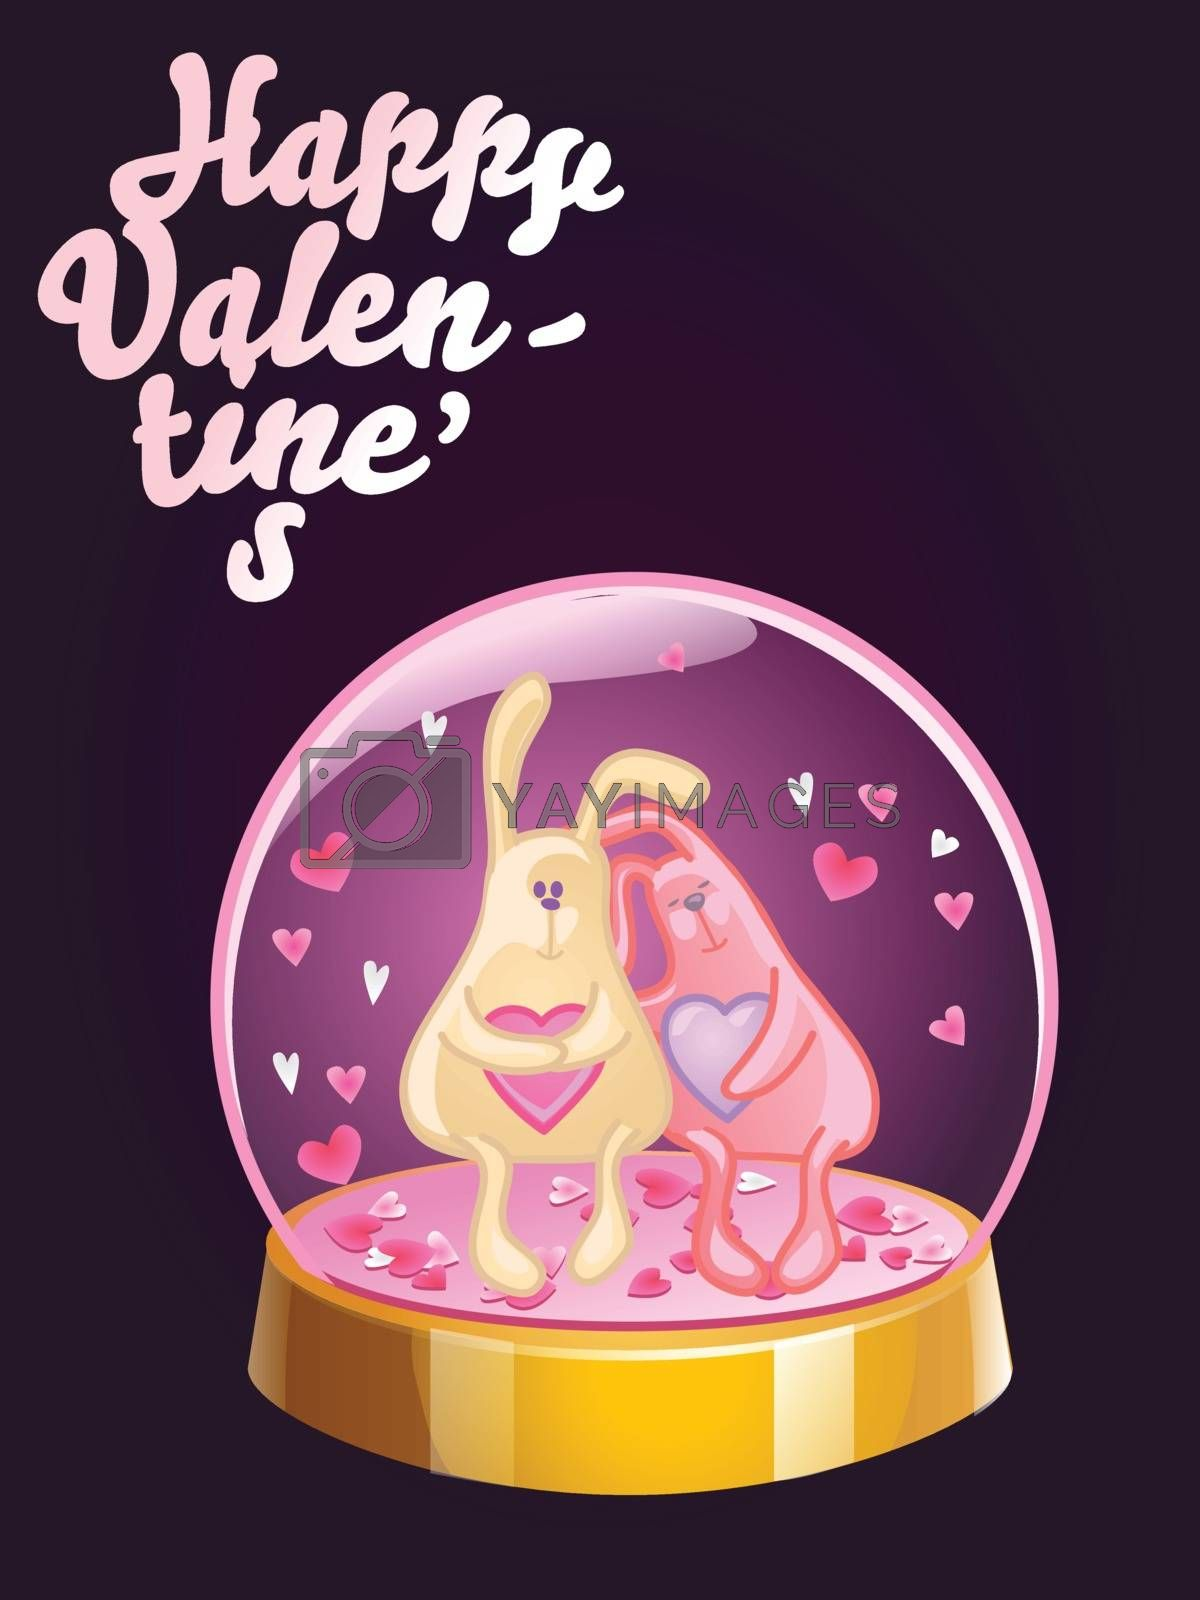 Romantic Happy Valentines Day card. Magic crystal ball with two rabbits and small pink hearts inside. Vector illustration by Nutela Pancake